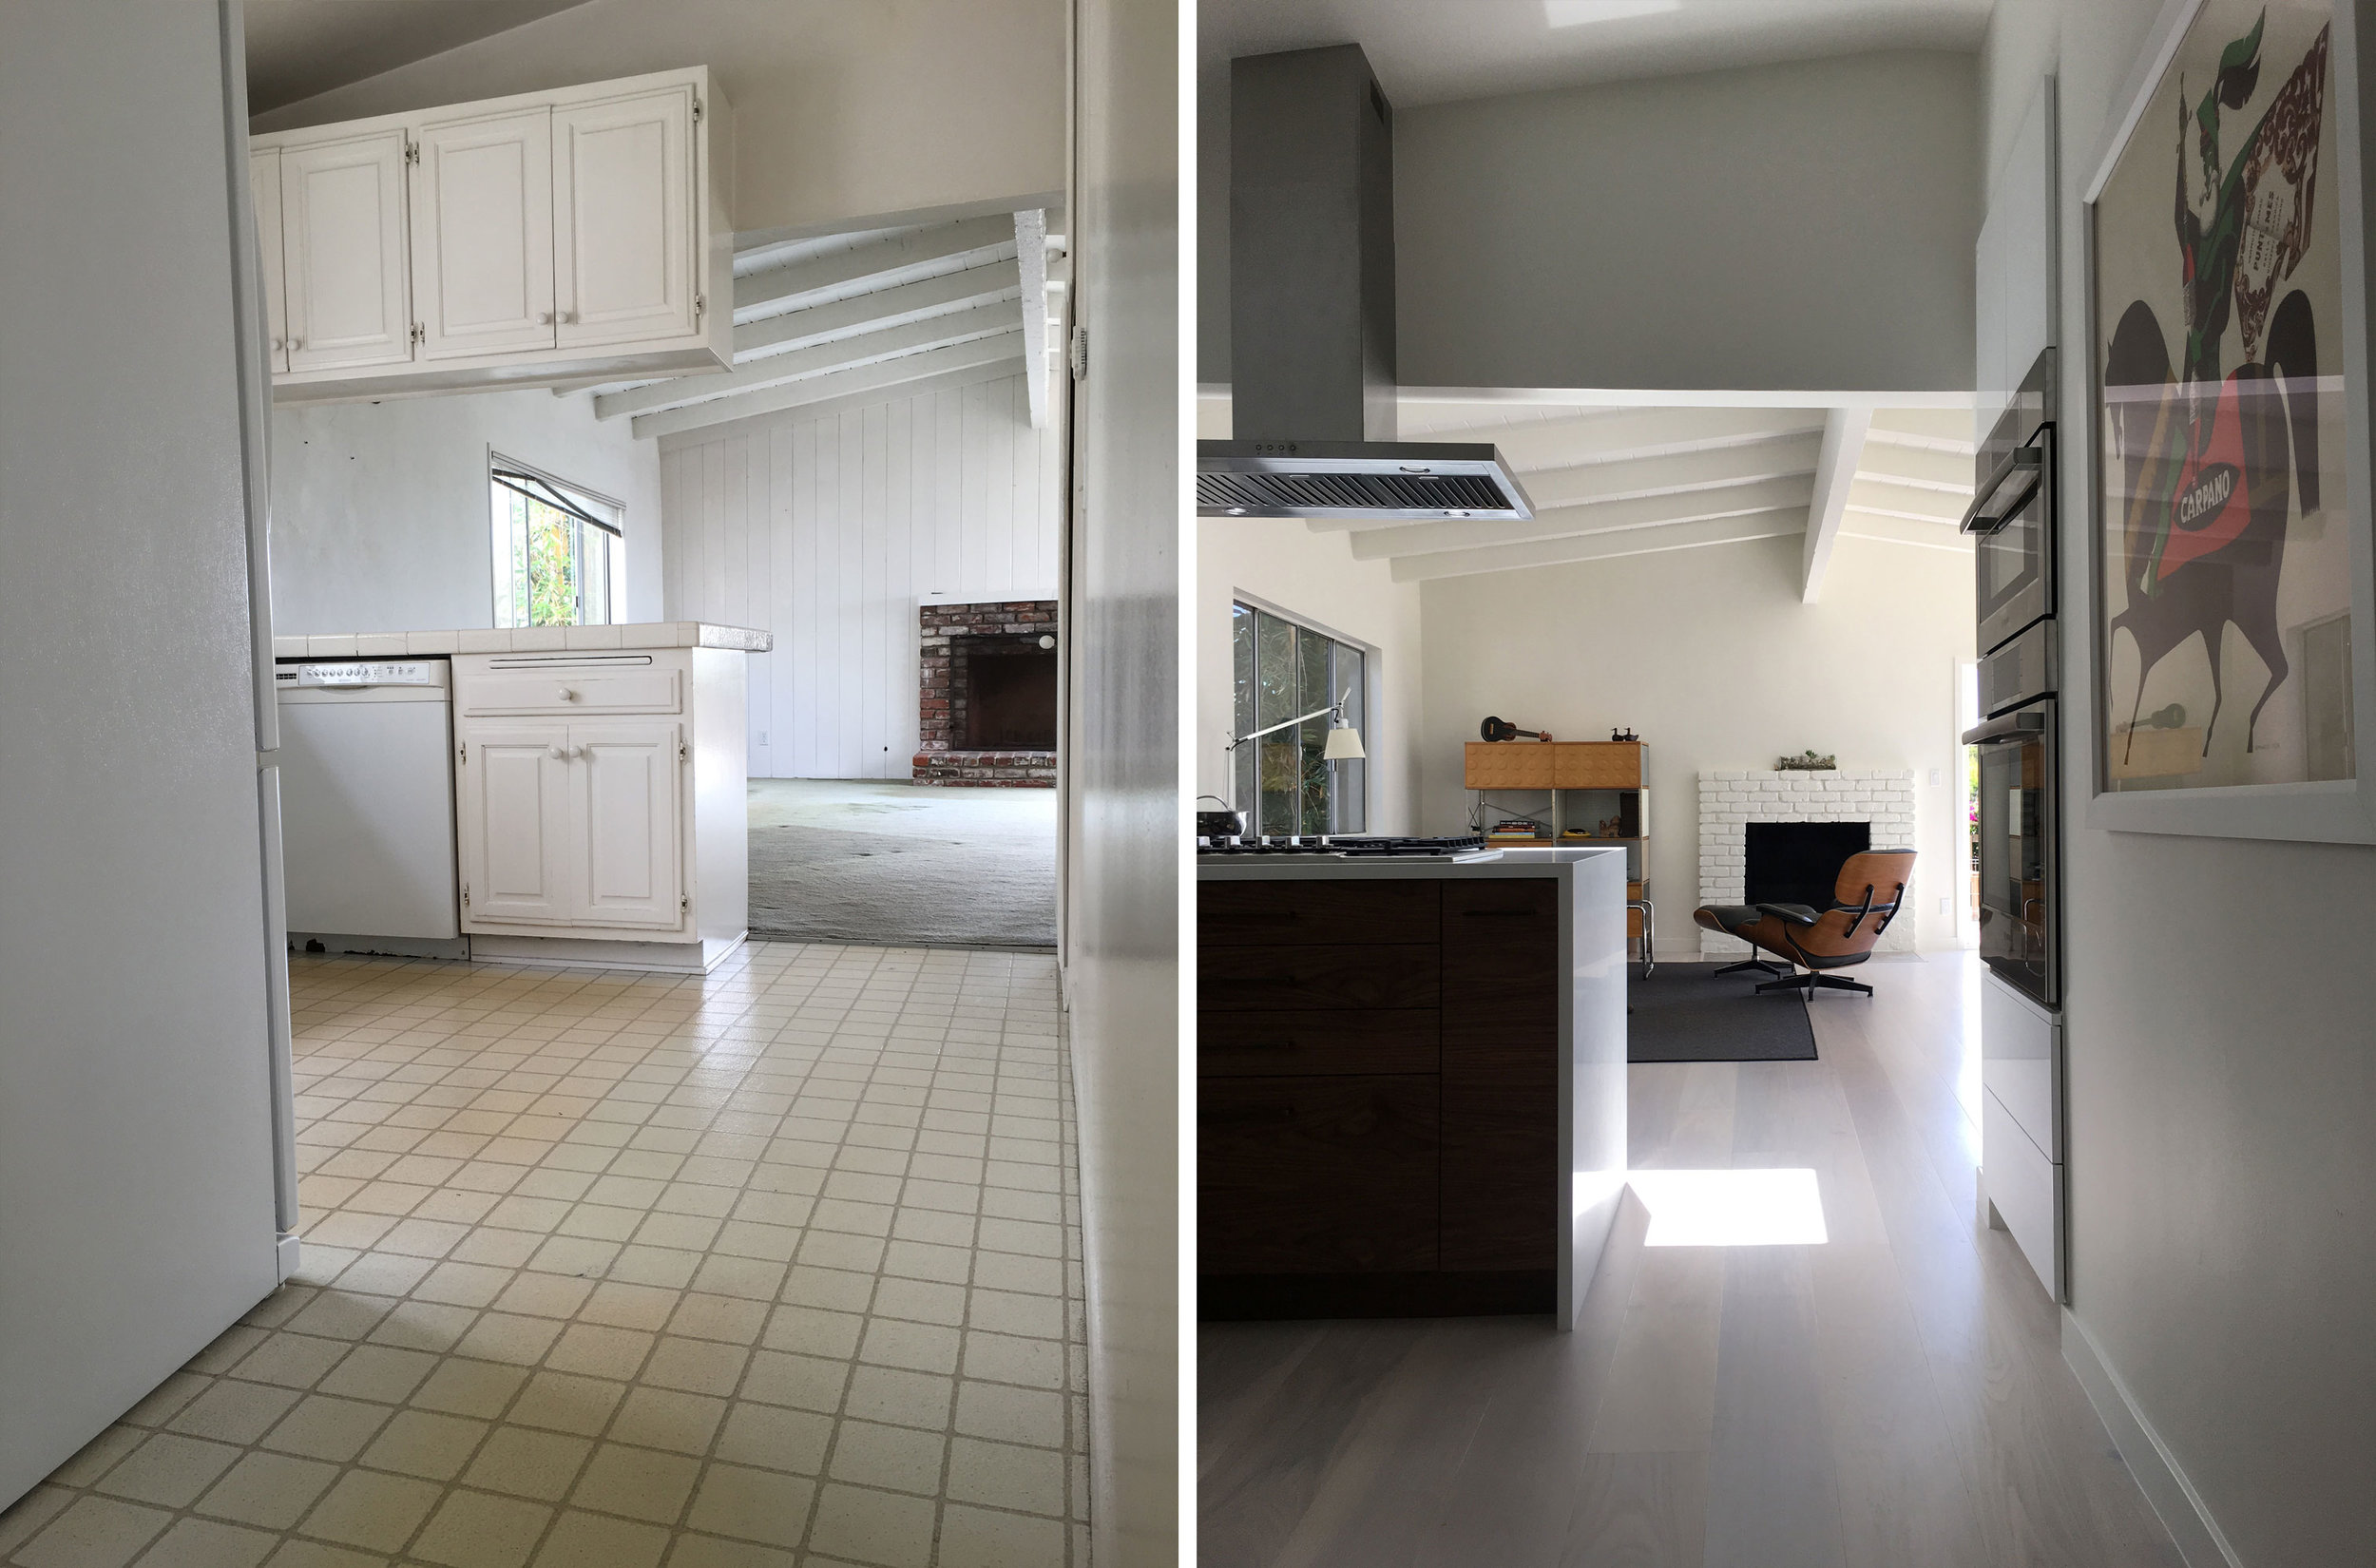 Before and After: Looking into Living Room from Kitchen